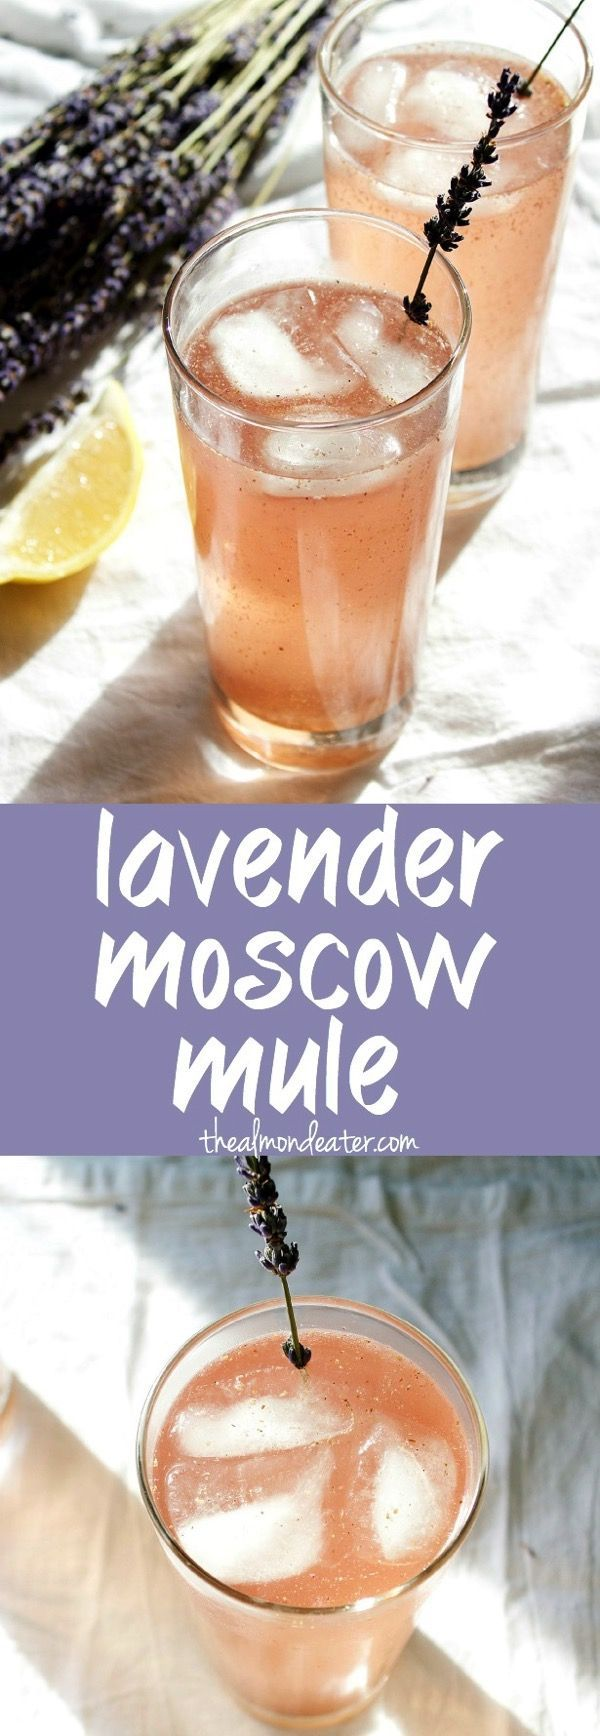 Lavender Moscow Mule | A unique twist on the classic drink | thealmondeater.com